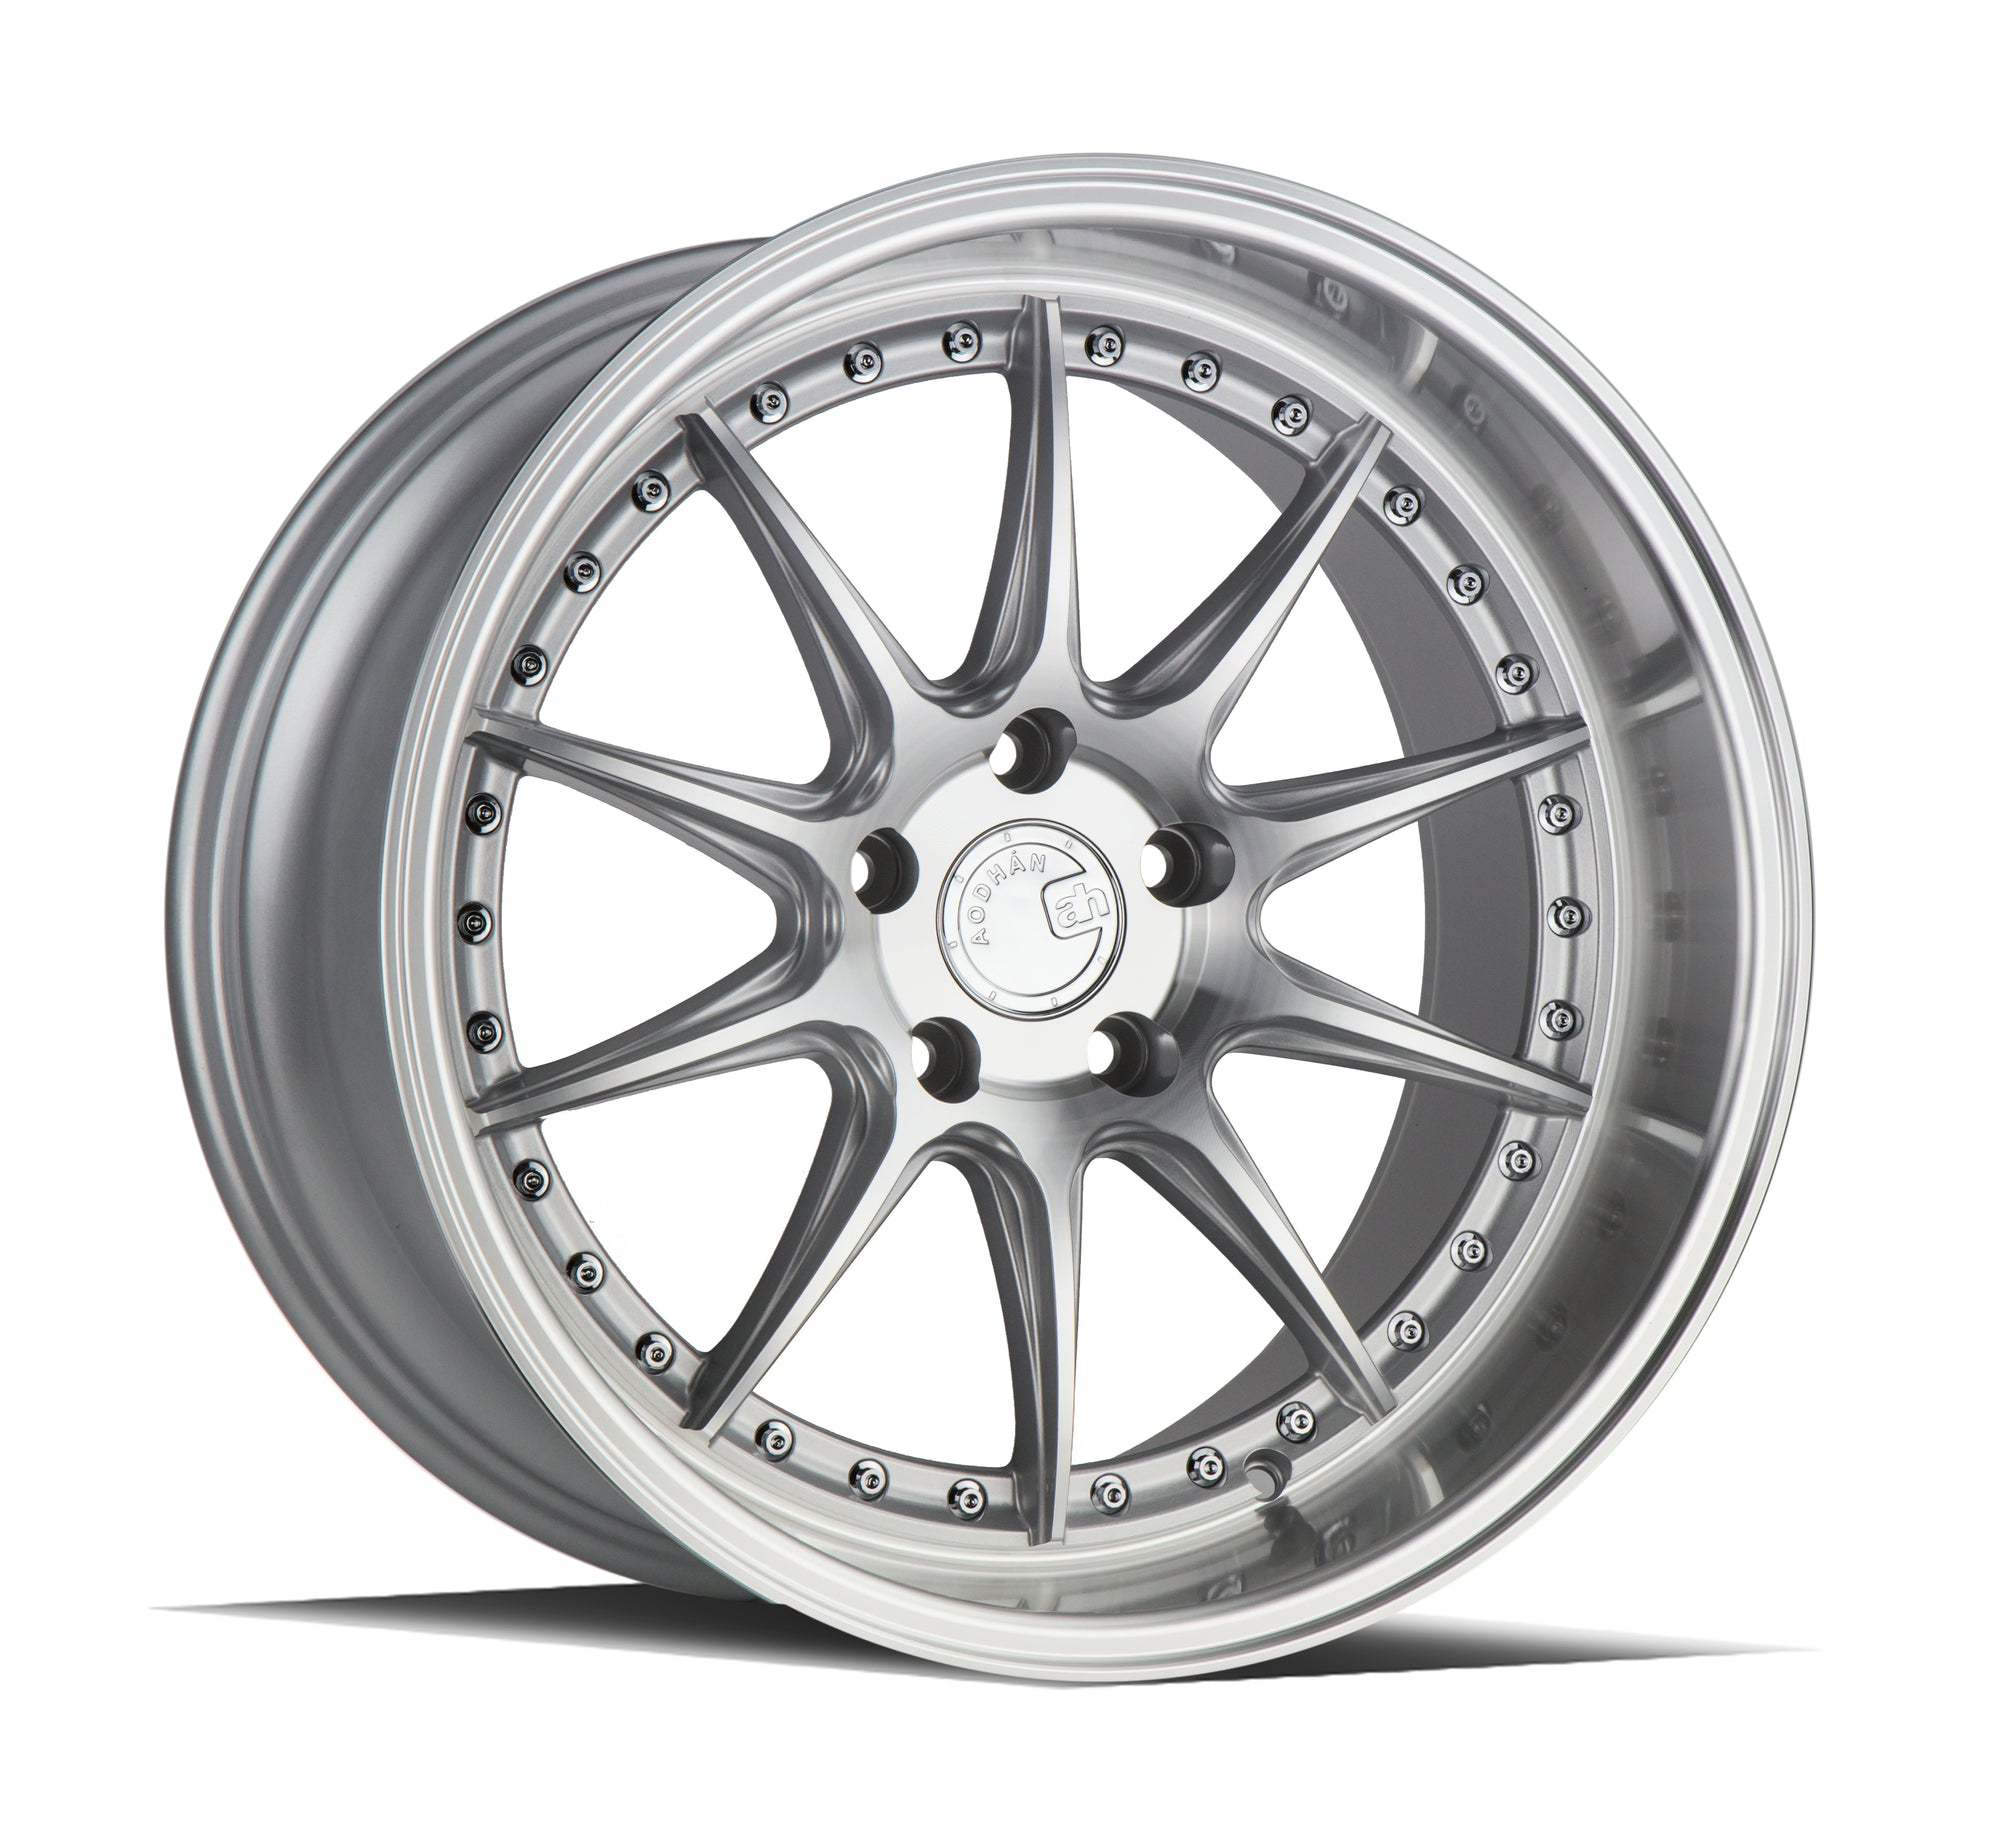 Aodhan DS07 18x10.5 5x114.3 +22 Silver w/Machined Face